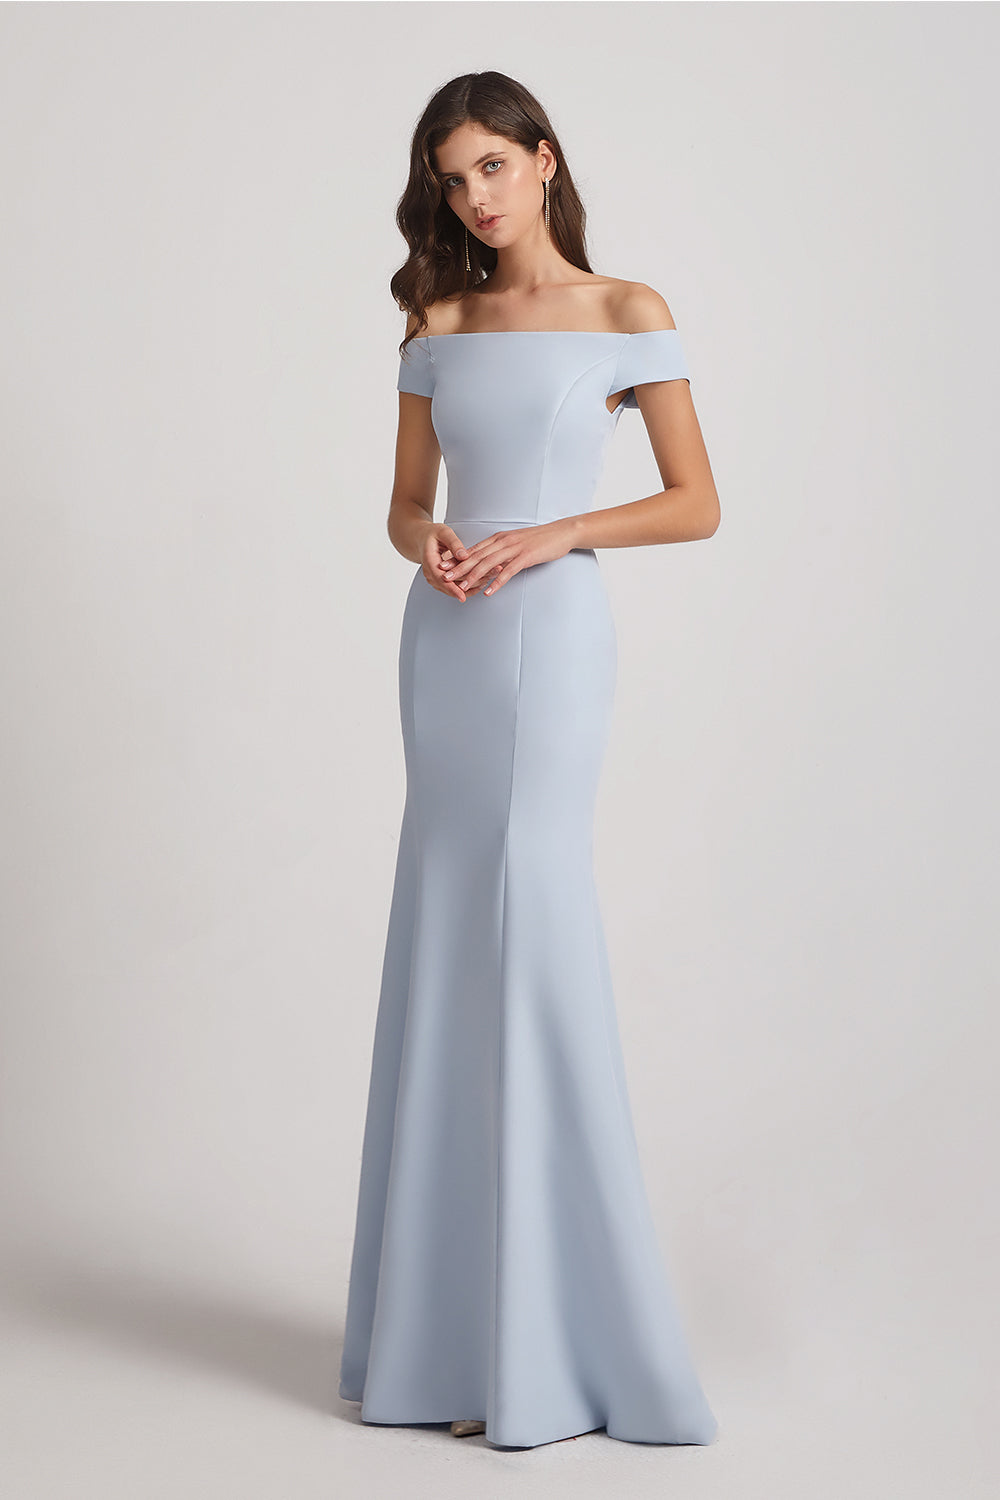 off the shoulder mermaid bridesmaid dresses